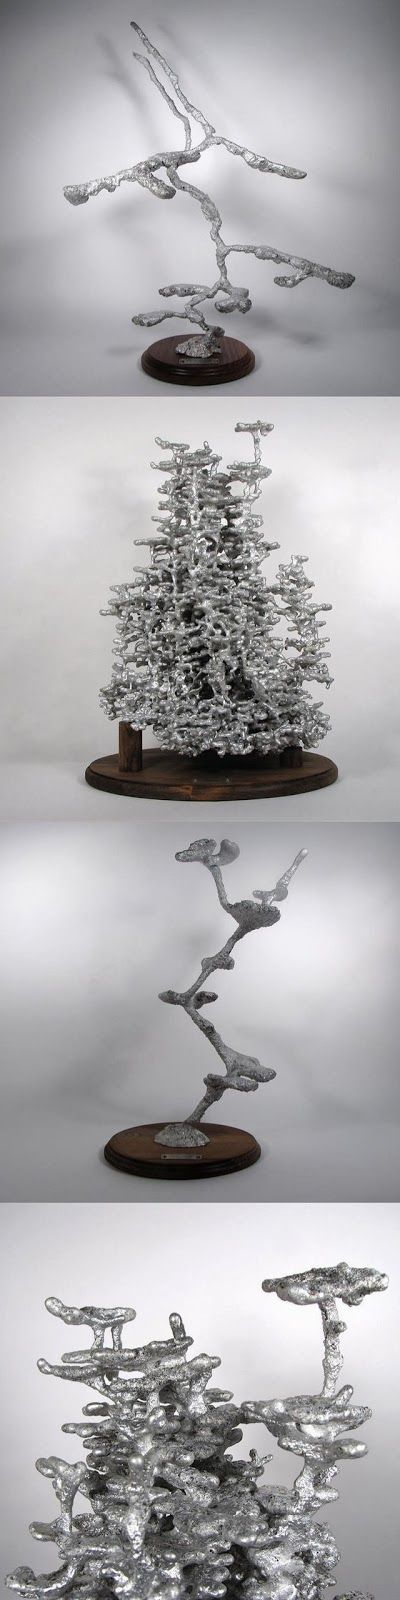 Aluminium Ant Colony Casts - Educational and beautiful!